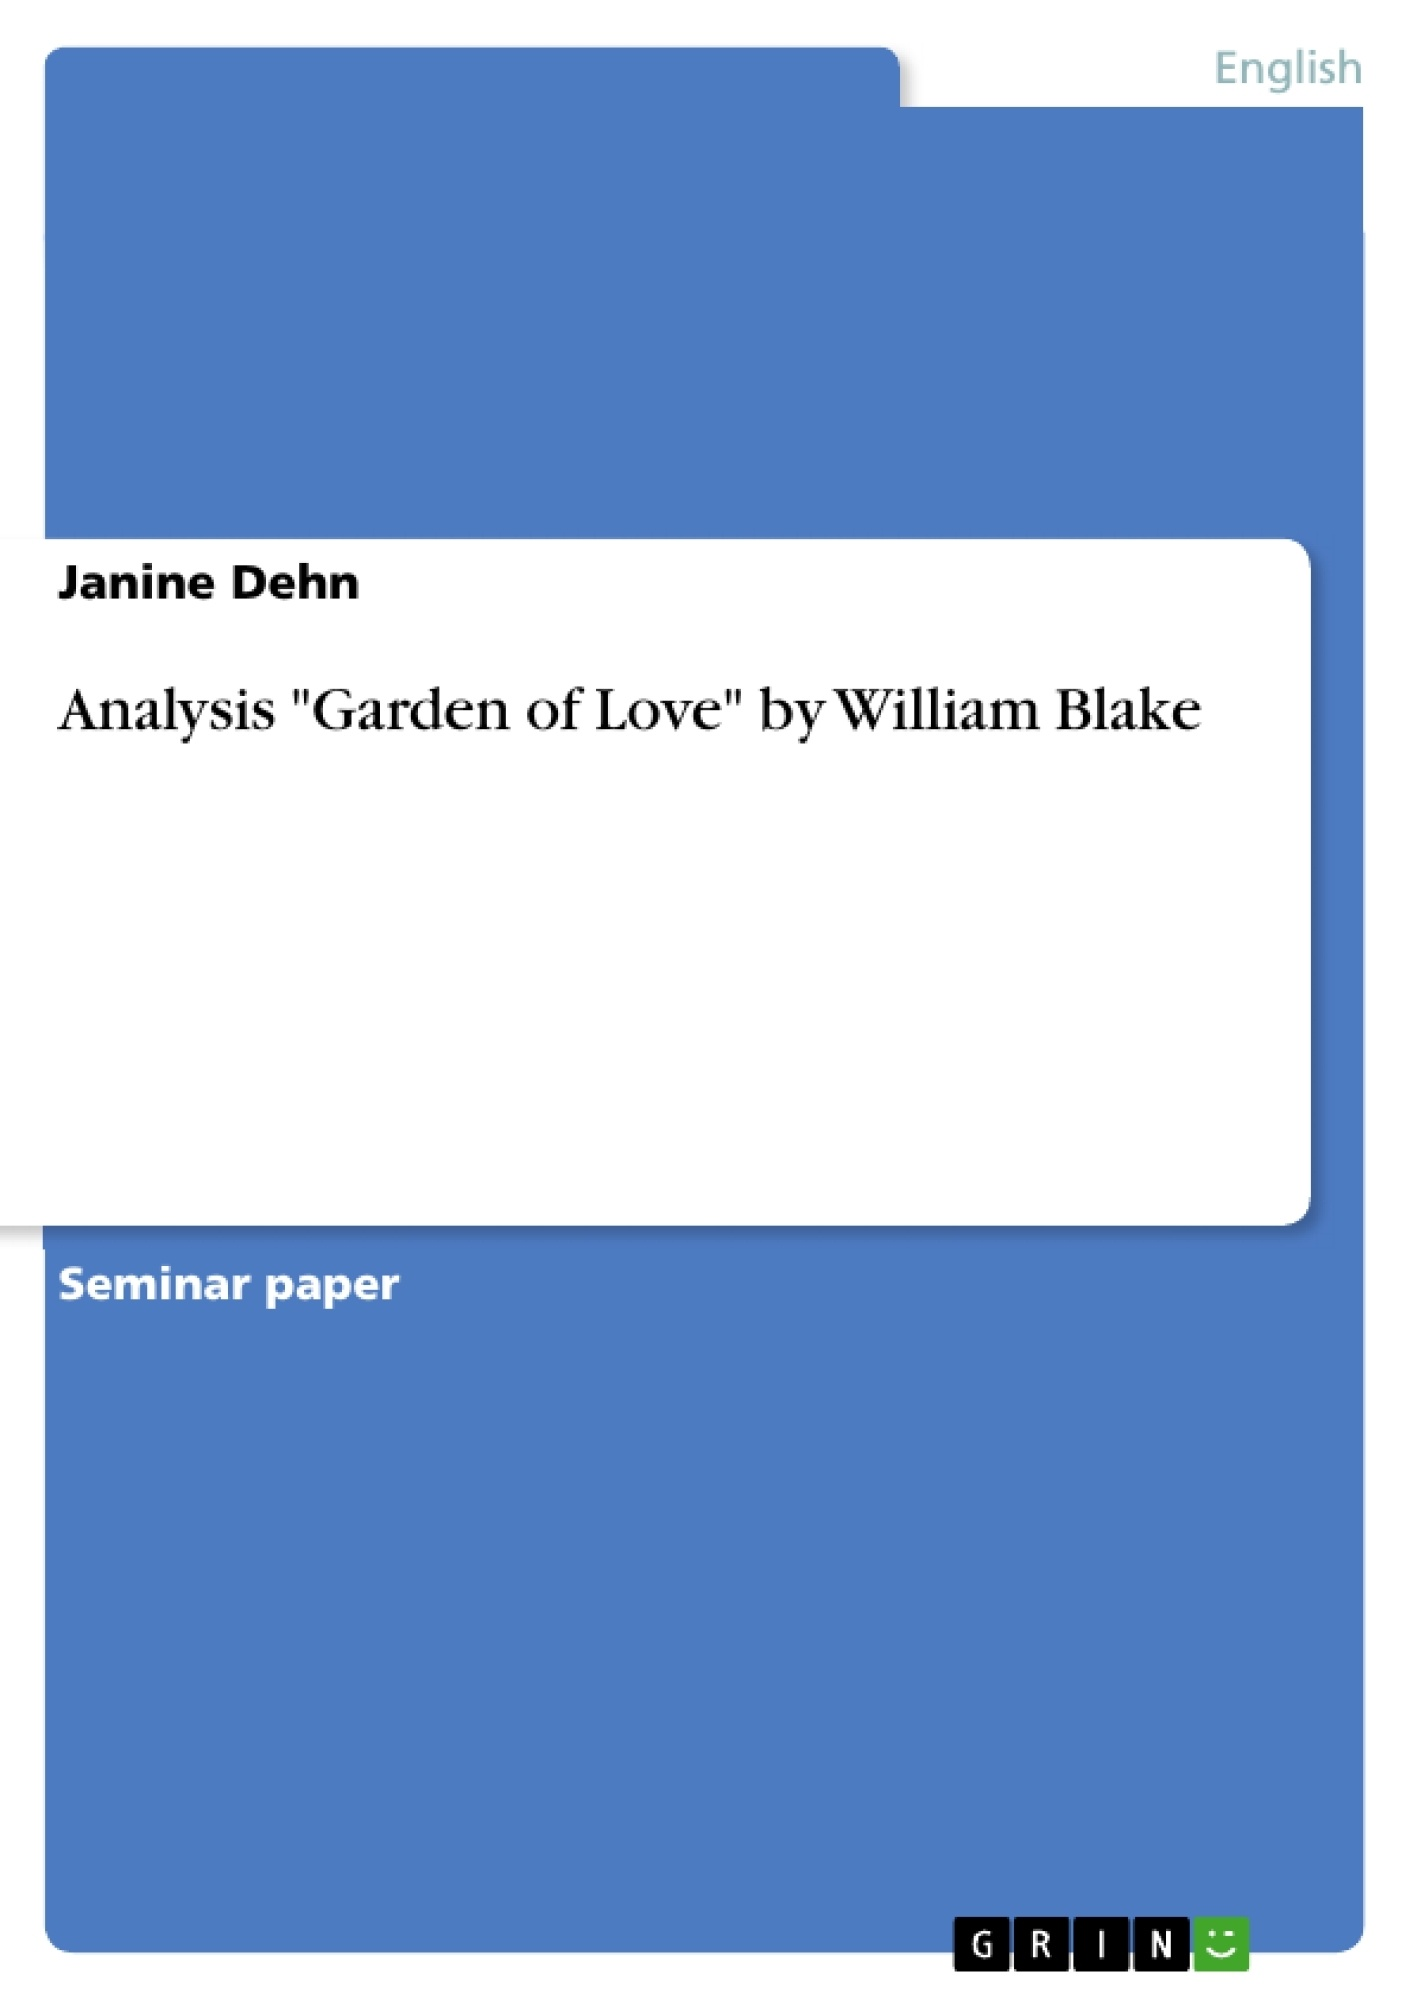 analysis garden of love by william blake publish your master s analysis garden of love by william blake publish your master s thesis bachelor s thesis essay or term paper